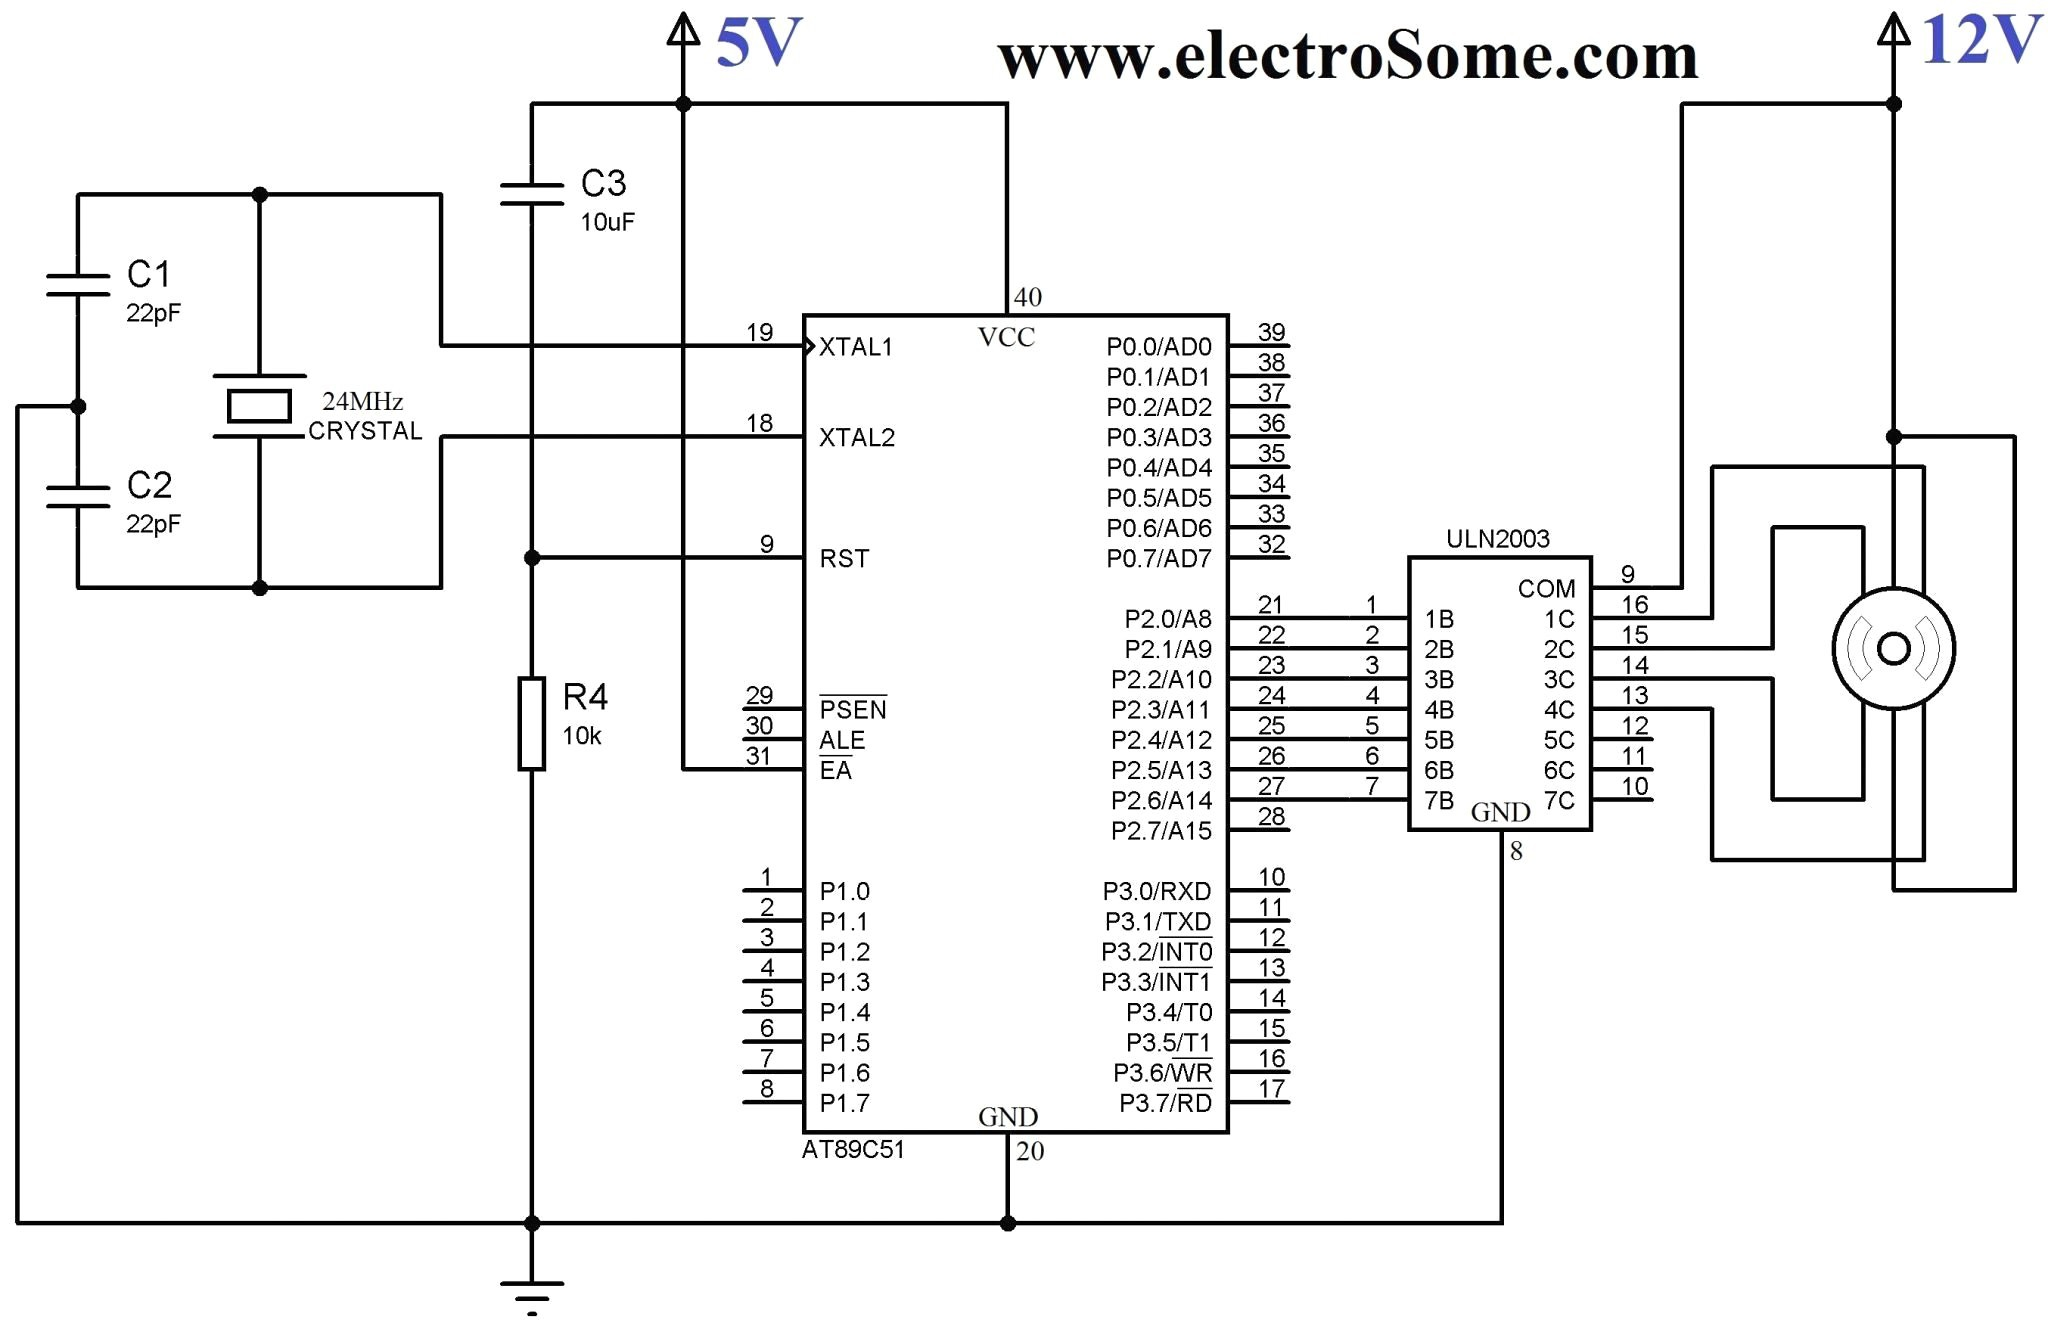 Commax Intercom Wiring Diagram Lighting Contactor Wiring Diagram with Cell Wiring Of Commax Intercom Wiring Diagram